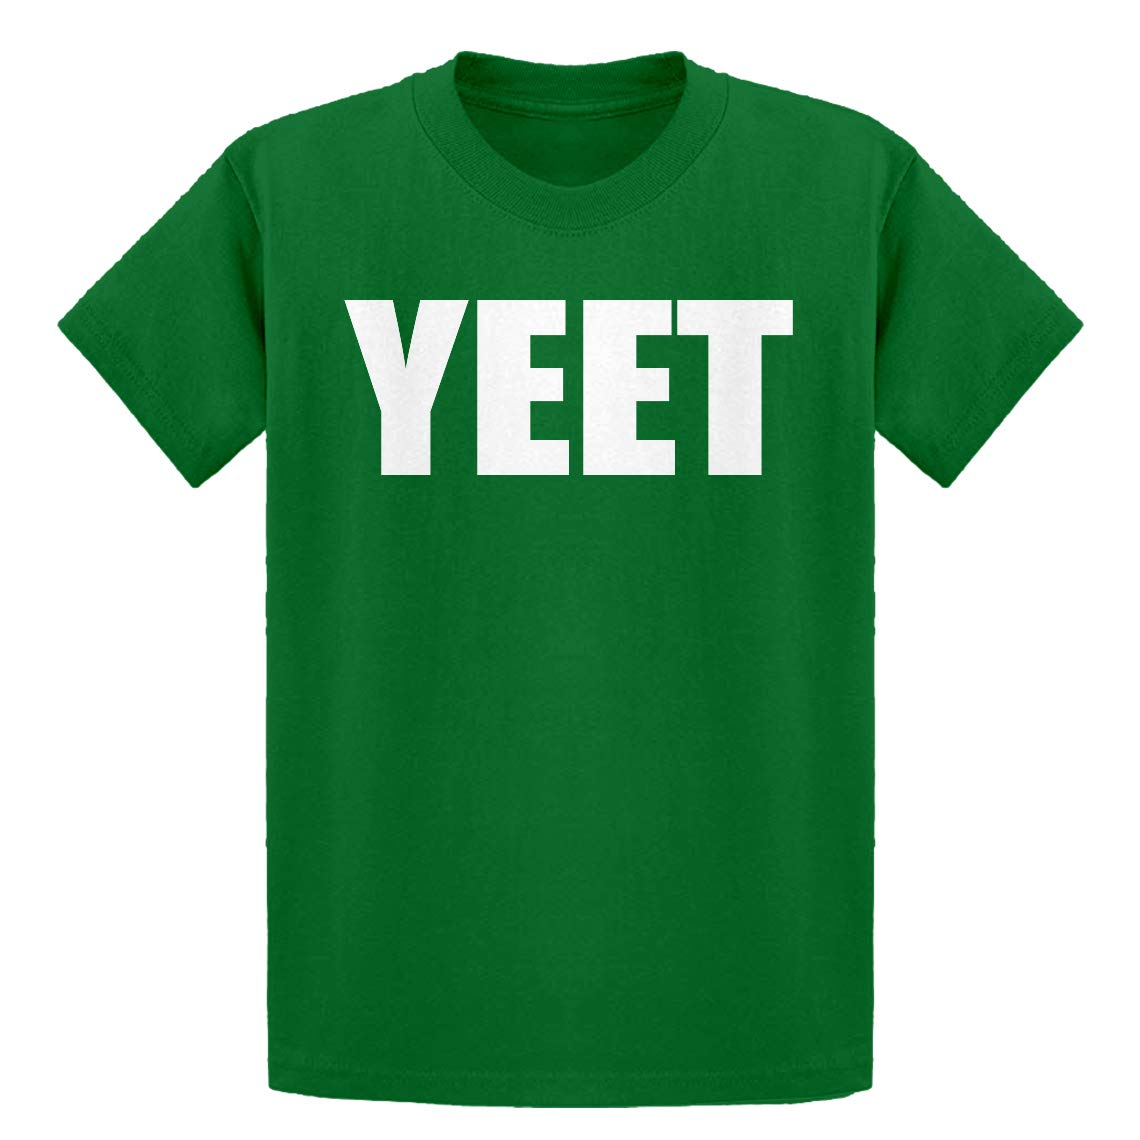 Indica Plateau Youth YEET! Kids T-Shirt 3771-Y